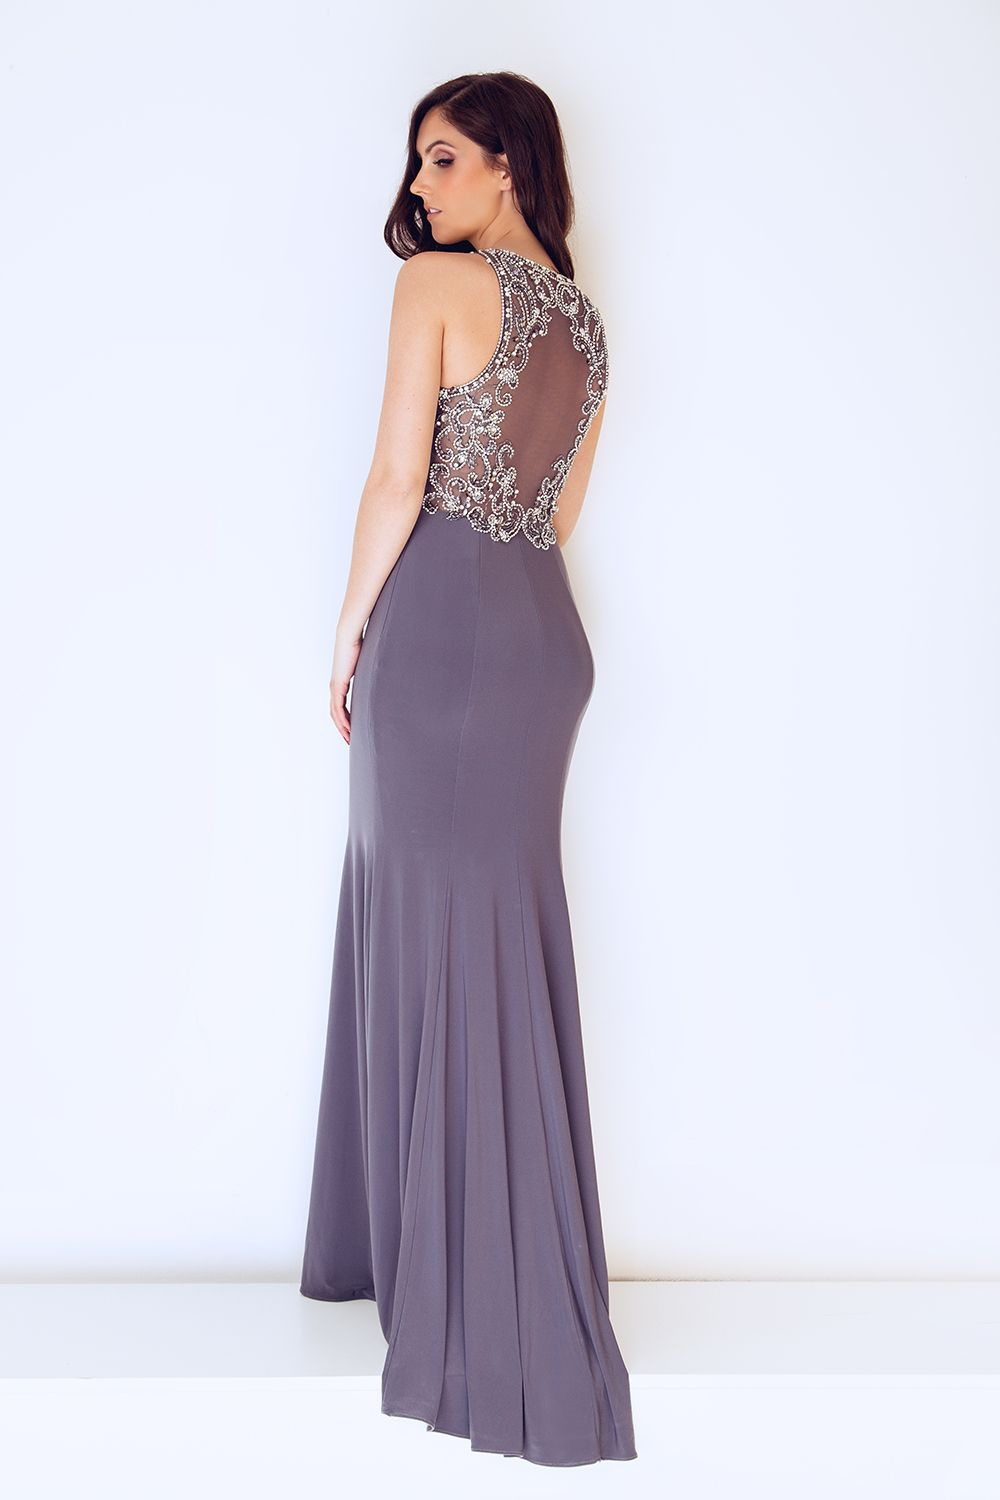 Grey pewter back detailed long evening dress with trail for any ...